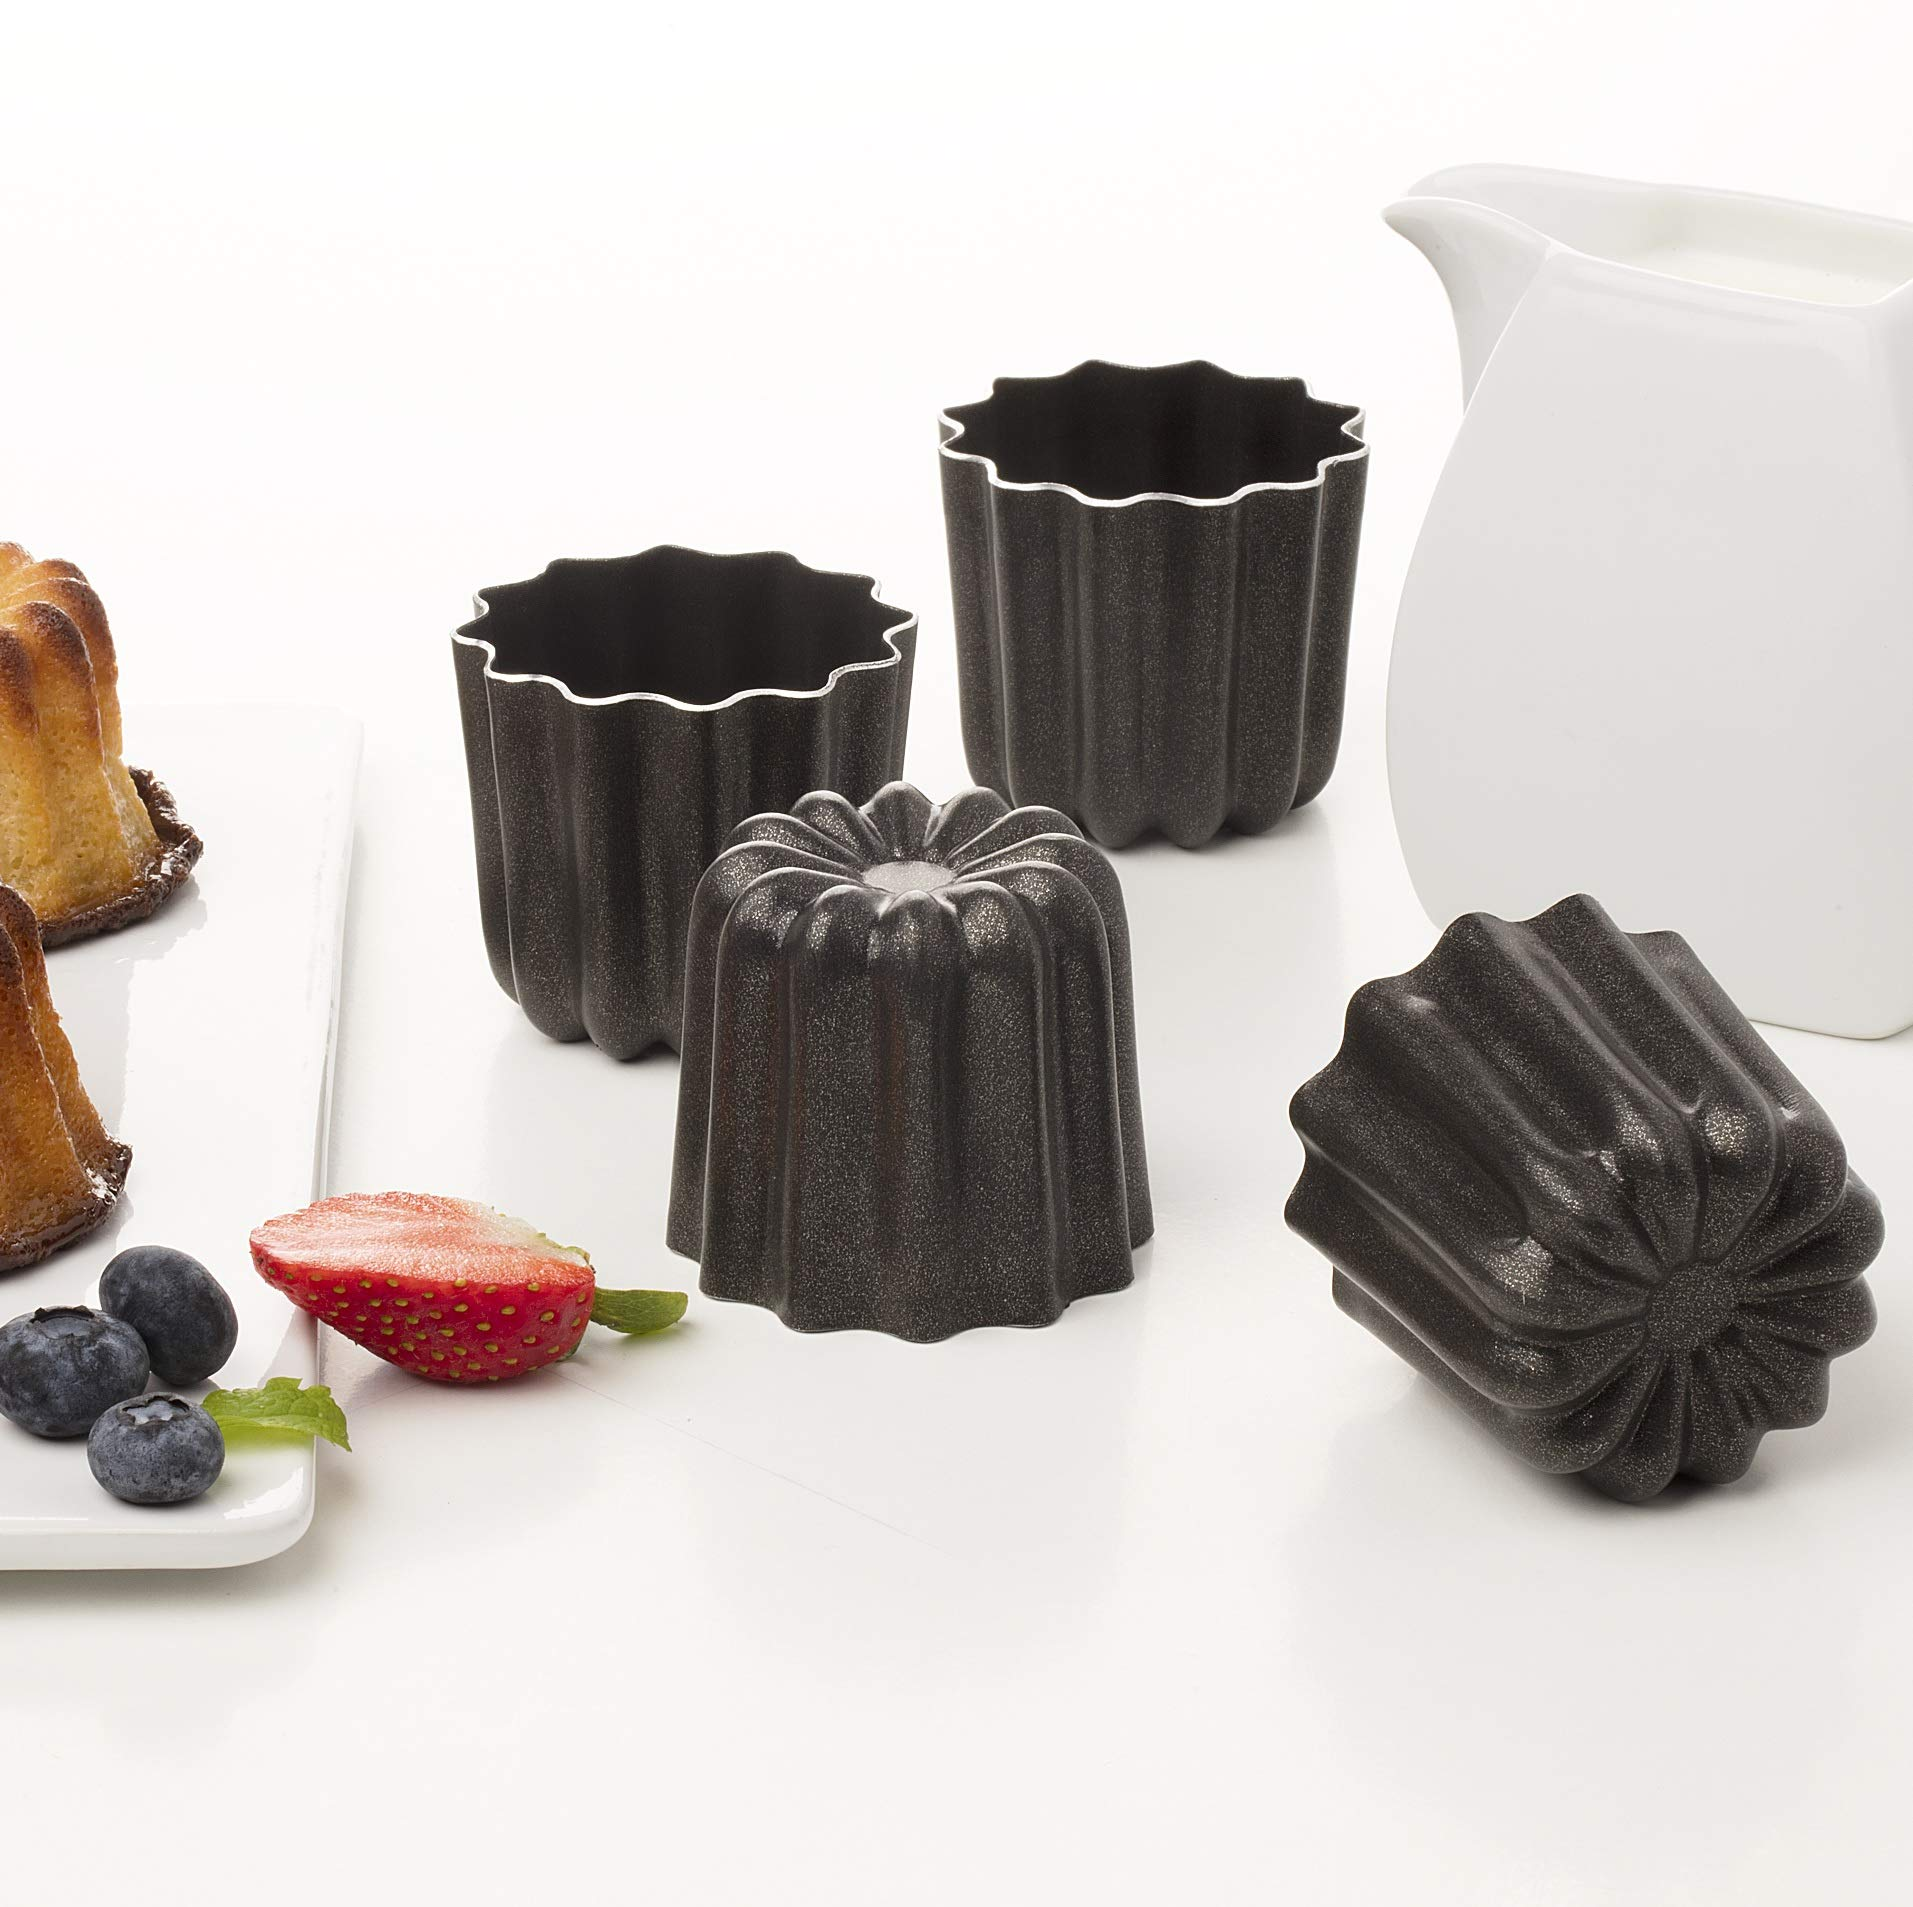 Pack of 4 NonStick Molds Cannele From Bordeaux French Custard Coffee Cake Traditional Pastry - 2.3 Inches